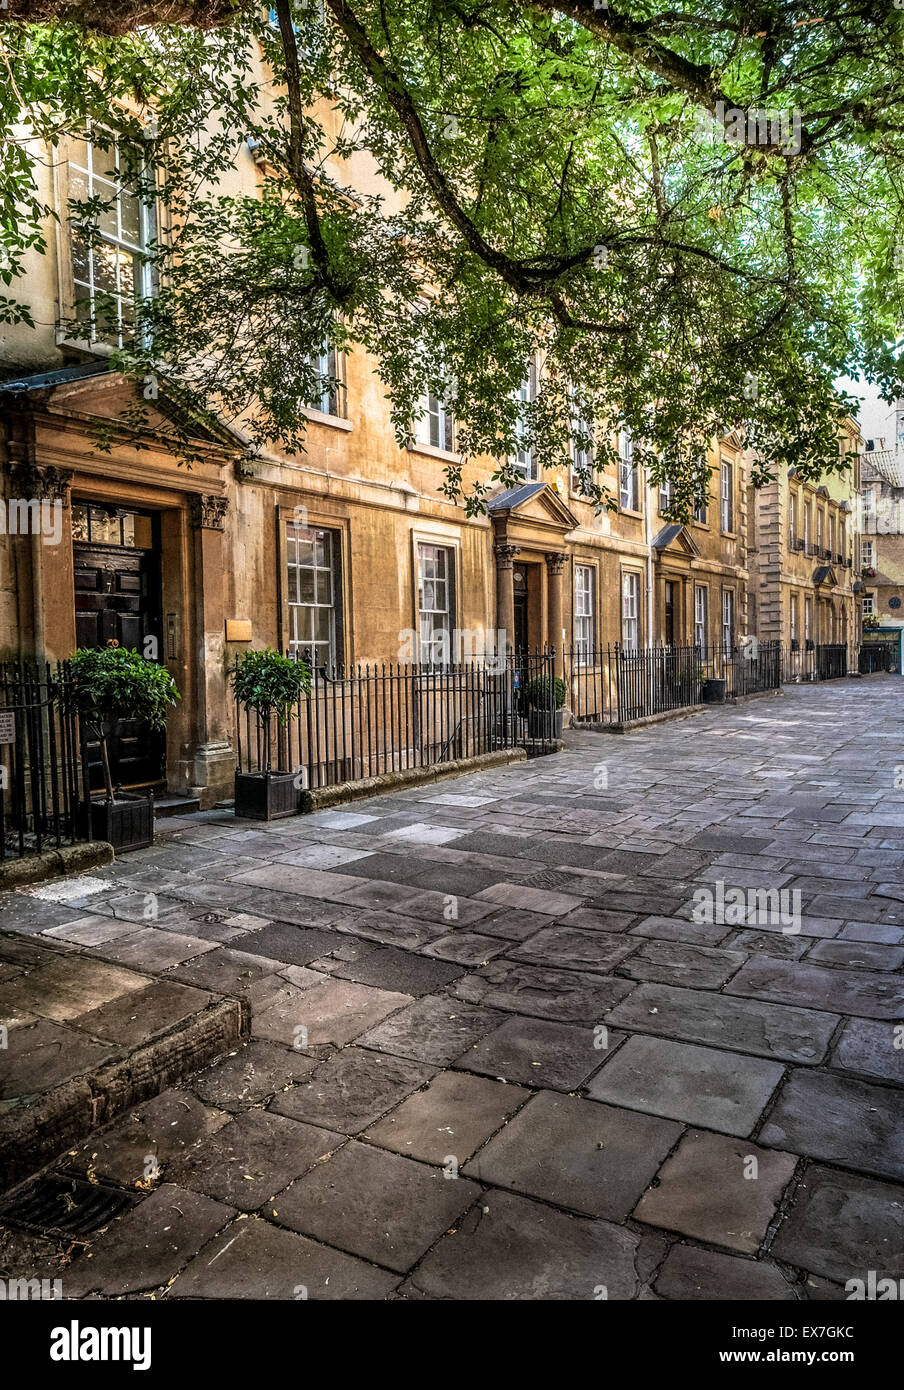 The Courtyard Bath Somerset UK - Stock Image